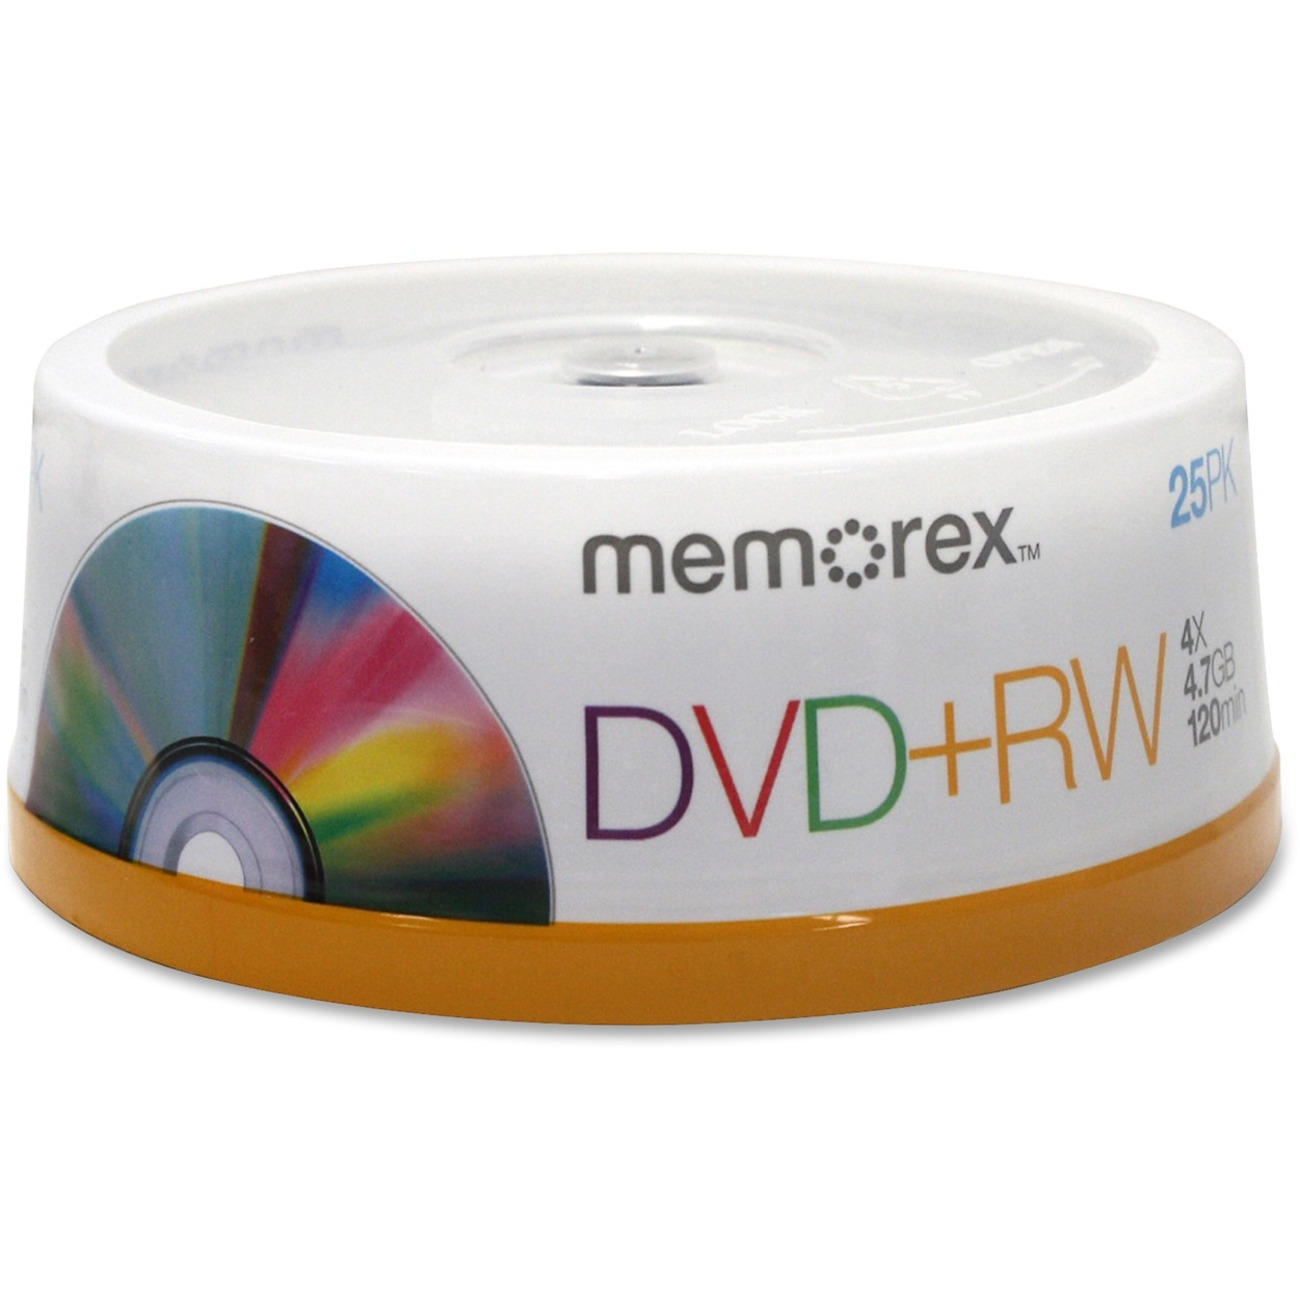 Verbatim dvd rw 4 7gb 4x with branded surface 30pk spindle 4 7gb - Dvd Rw Recordable Blank Media Can Reliably Be Rewritten Up To 1 000 Times And Can Store Up To 4 7 Gb Of Data Approximately 120 Minutes Of Video